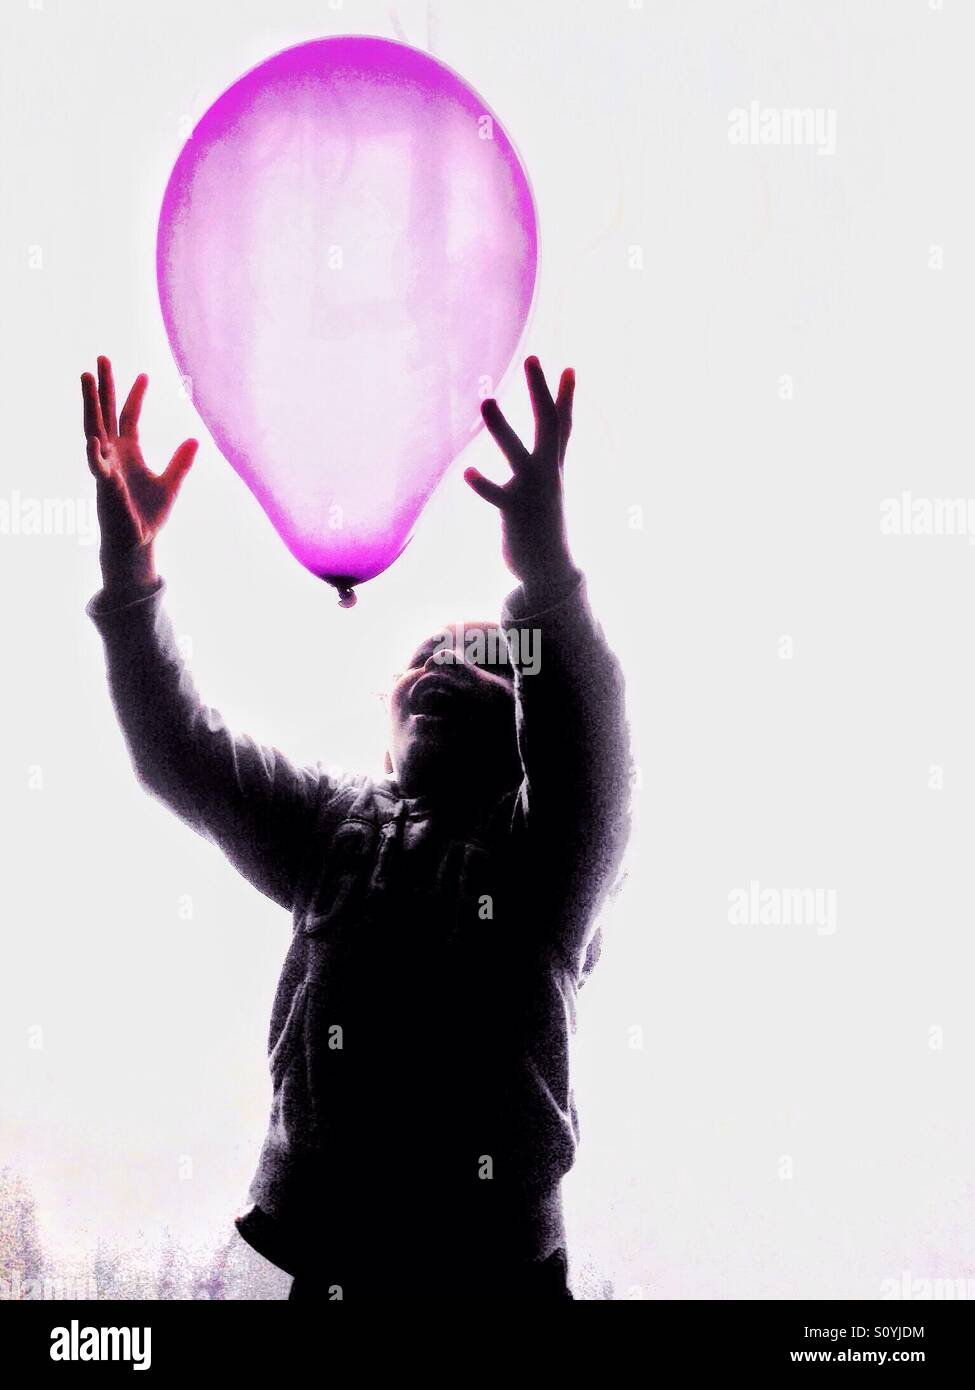 Boy catching a Pink balloon. - Stock Image